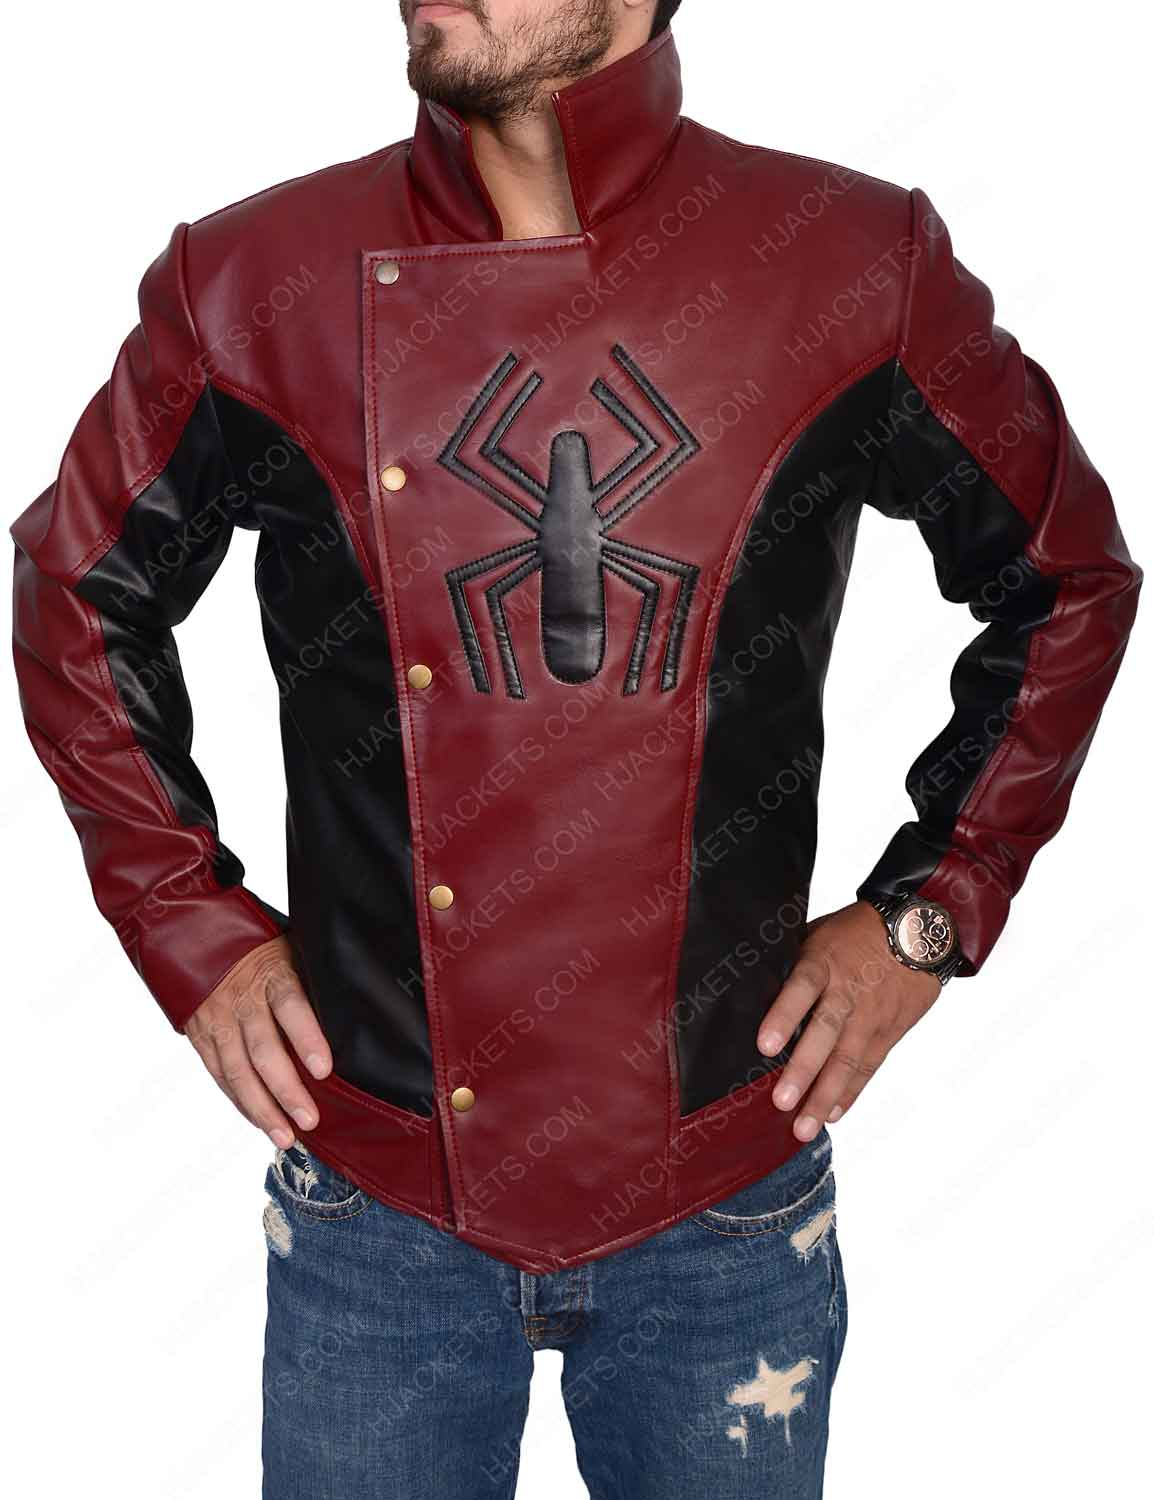 ffecf555f The Last Stand Spider Man Jacket   Peter Parker - Hjackets